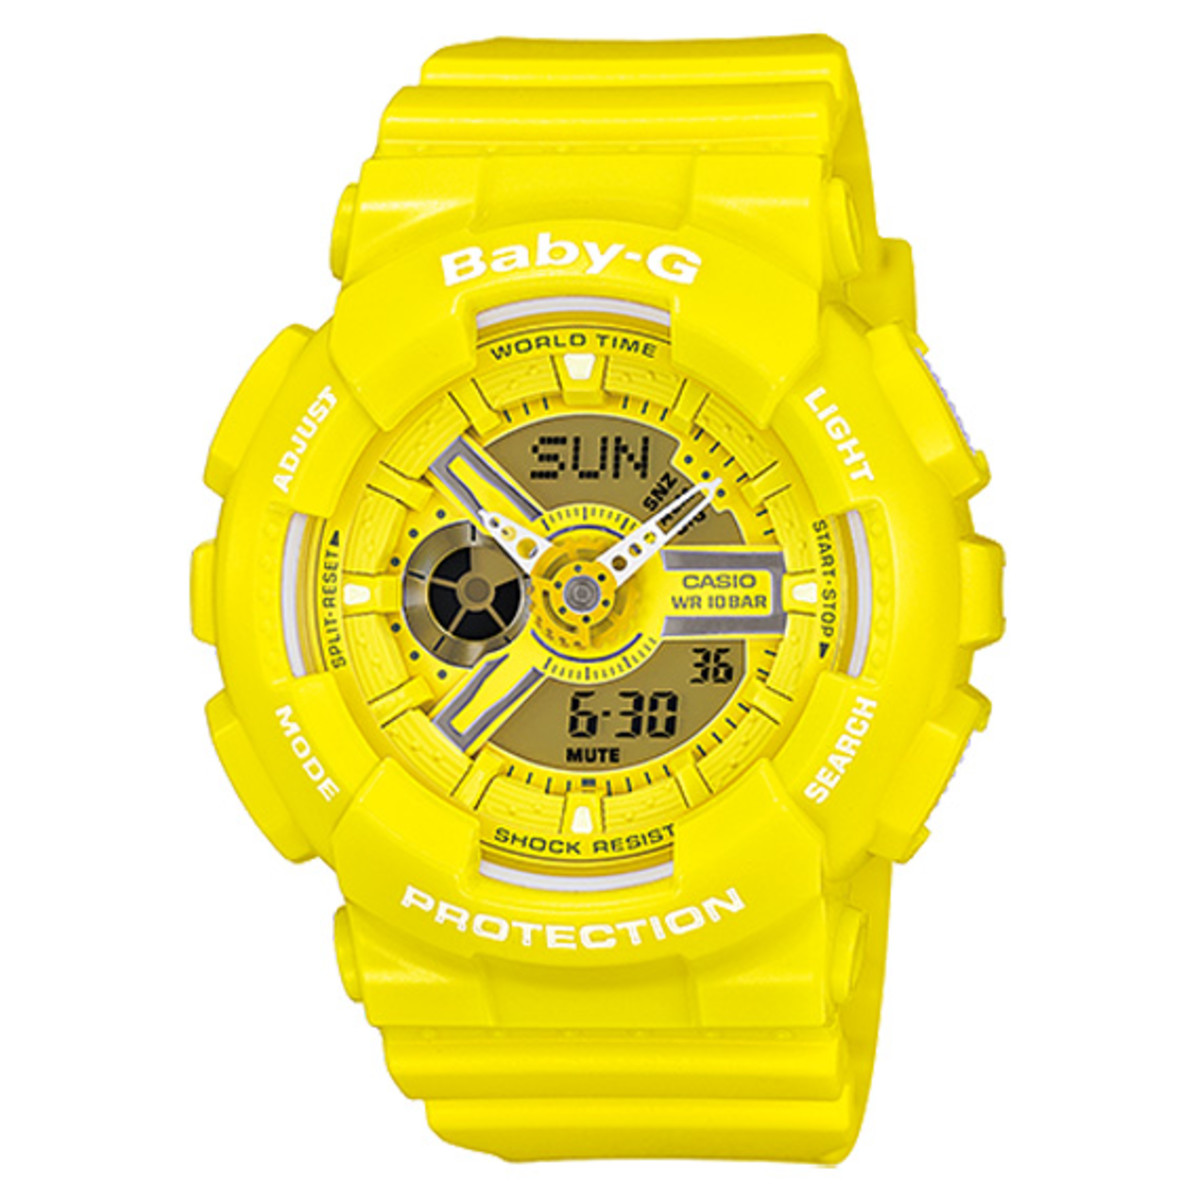 Casio G-Shock GA-110 + Baby-G BA-110 Matching Collection - 6